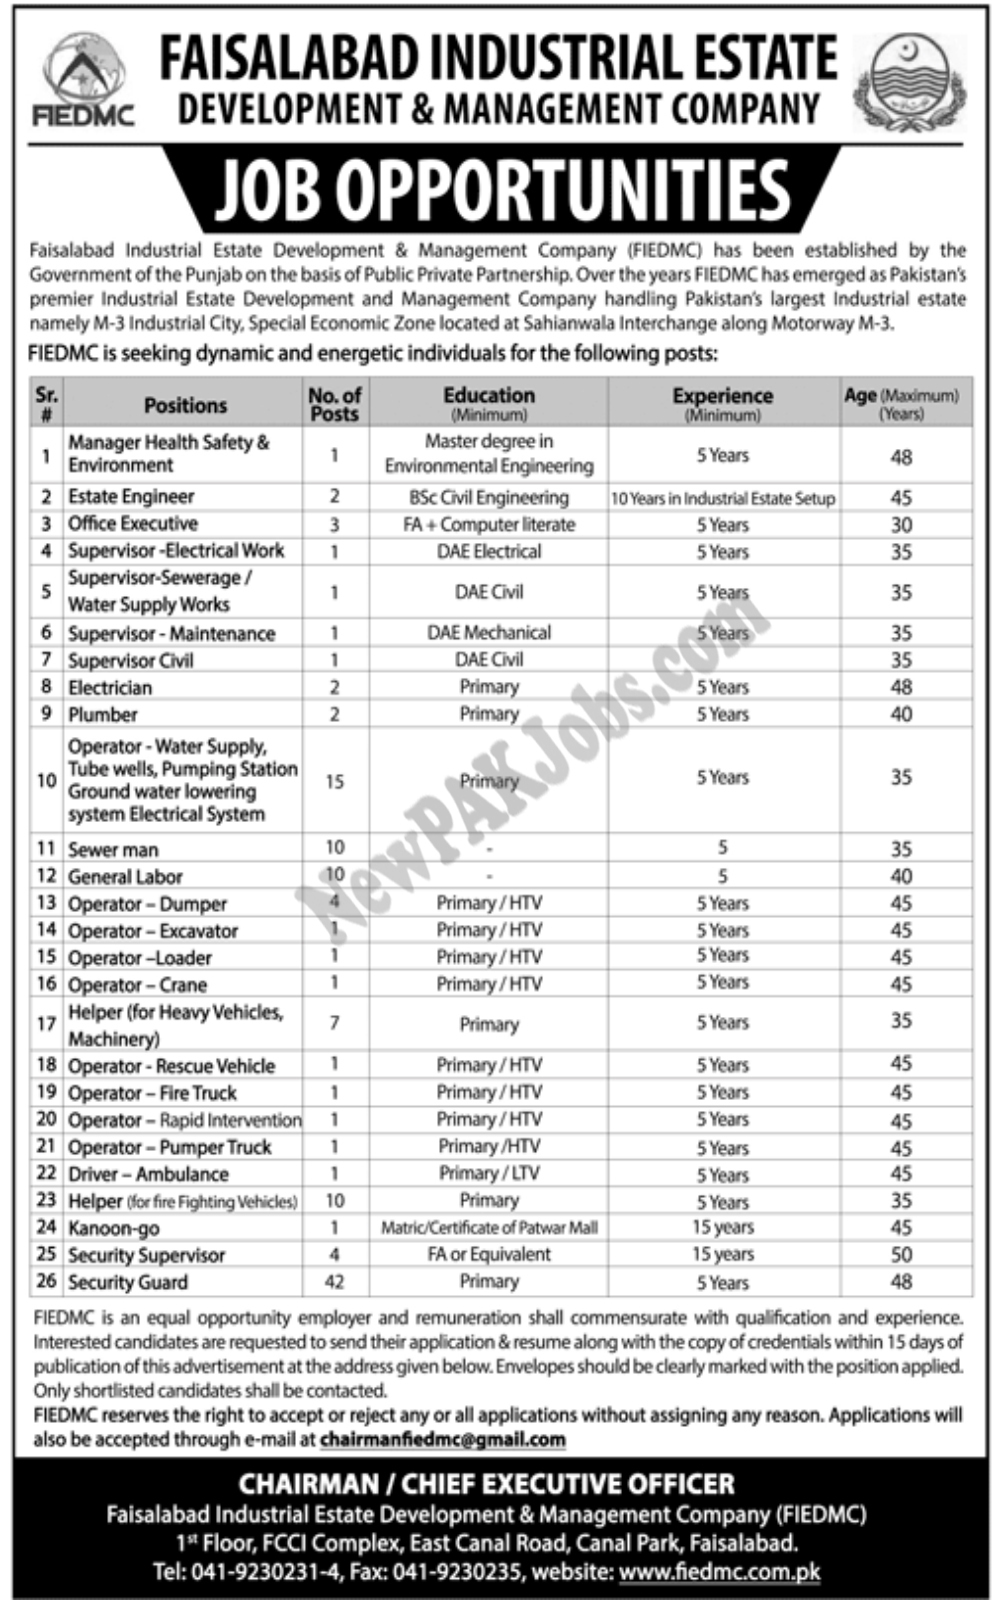 New Jobs In Faisalabad Industrial Estate Development and Management Company (125 Positions),Latest Govt Vacancies